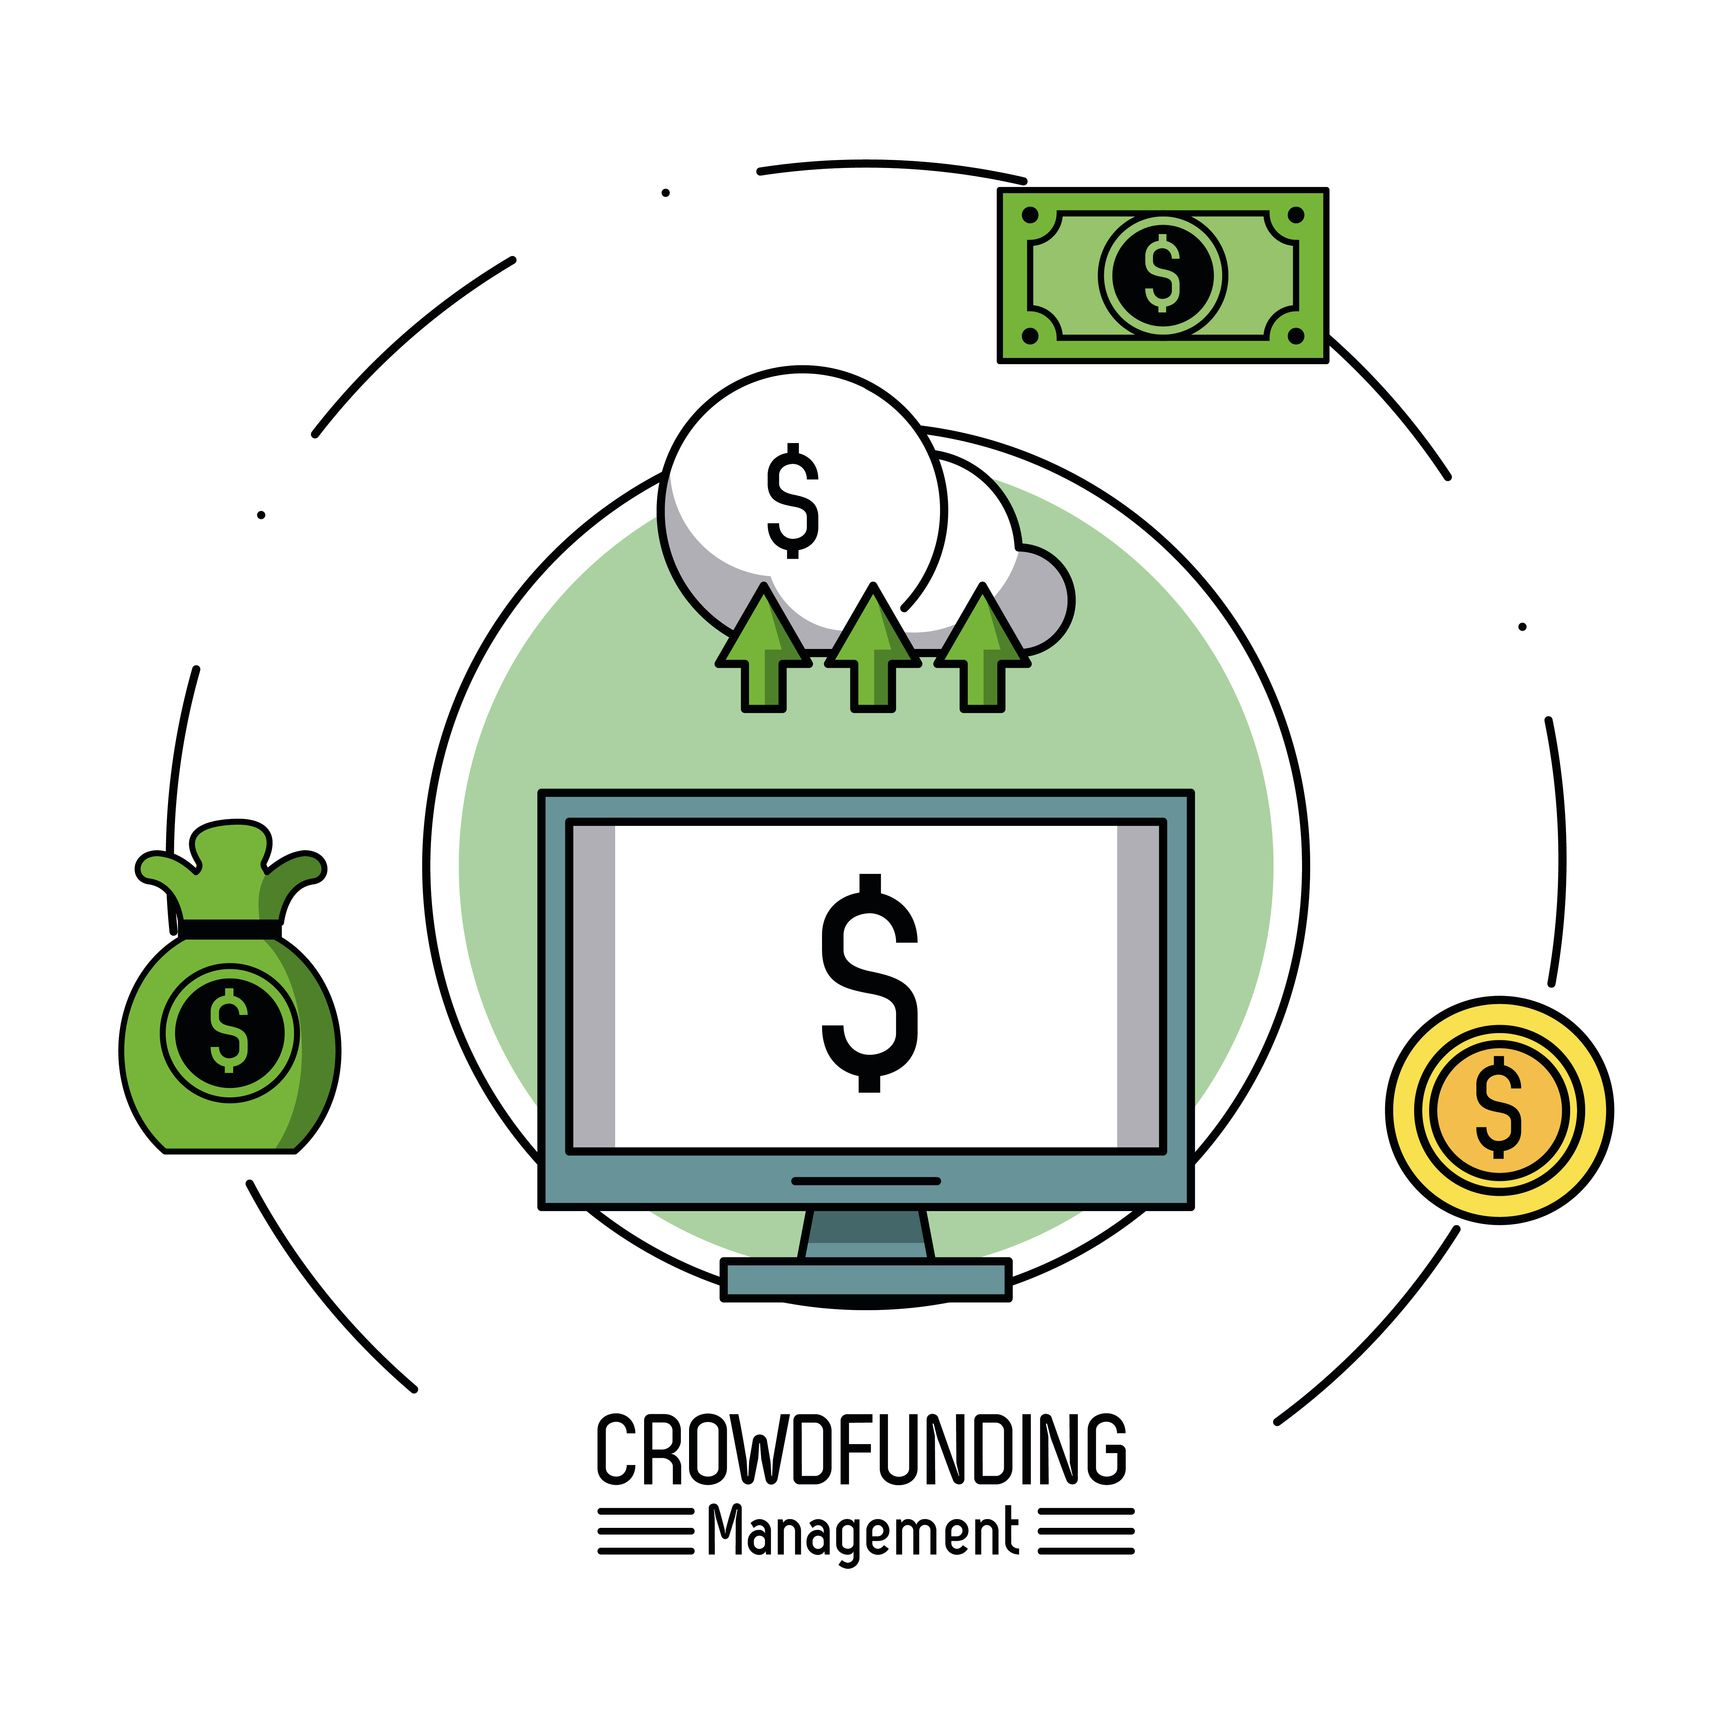 Crowfunding management infographic